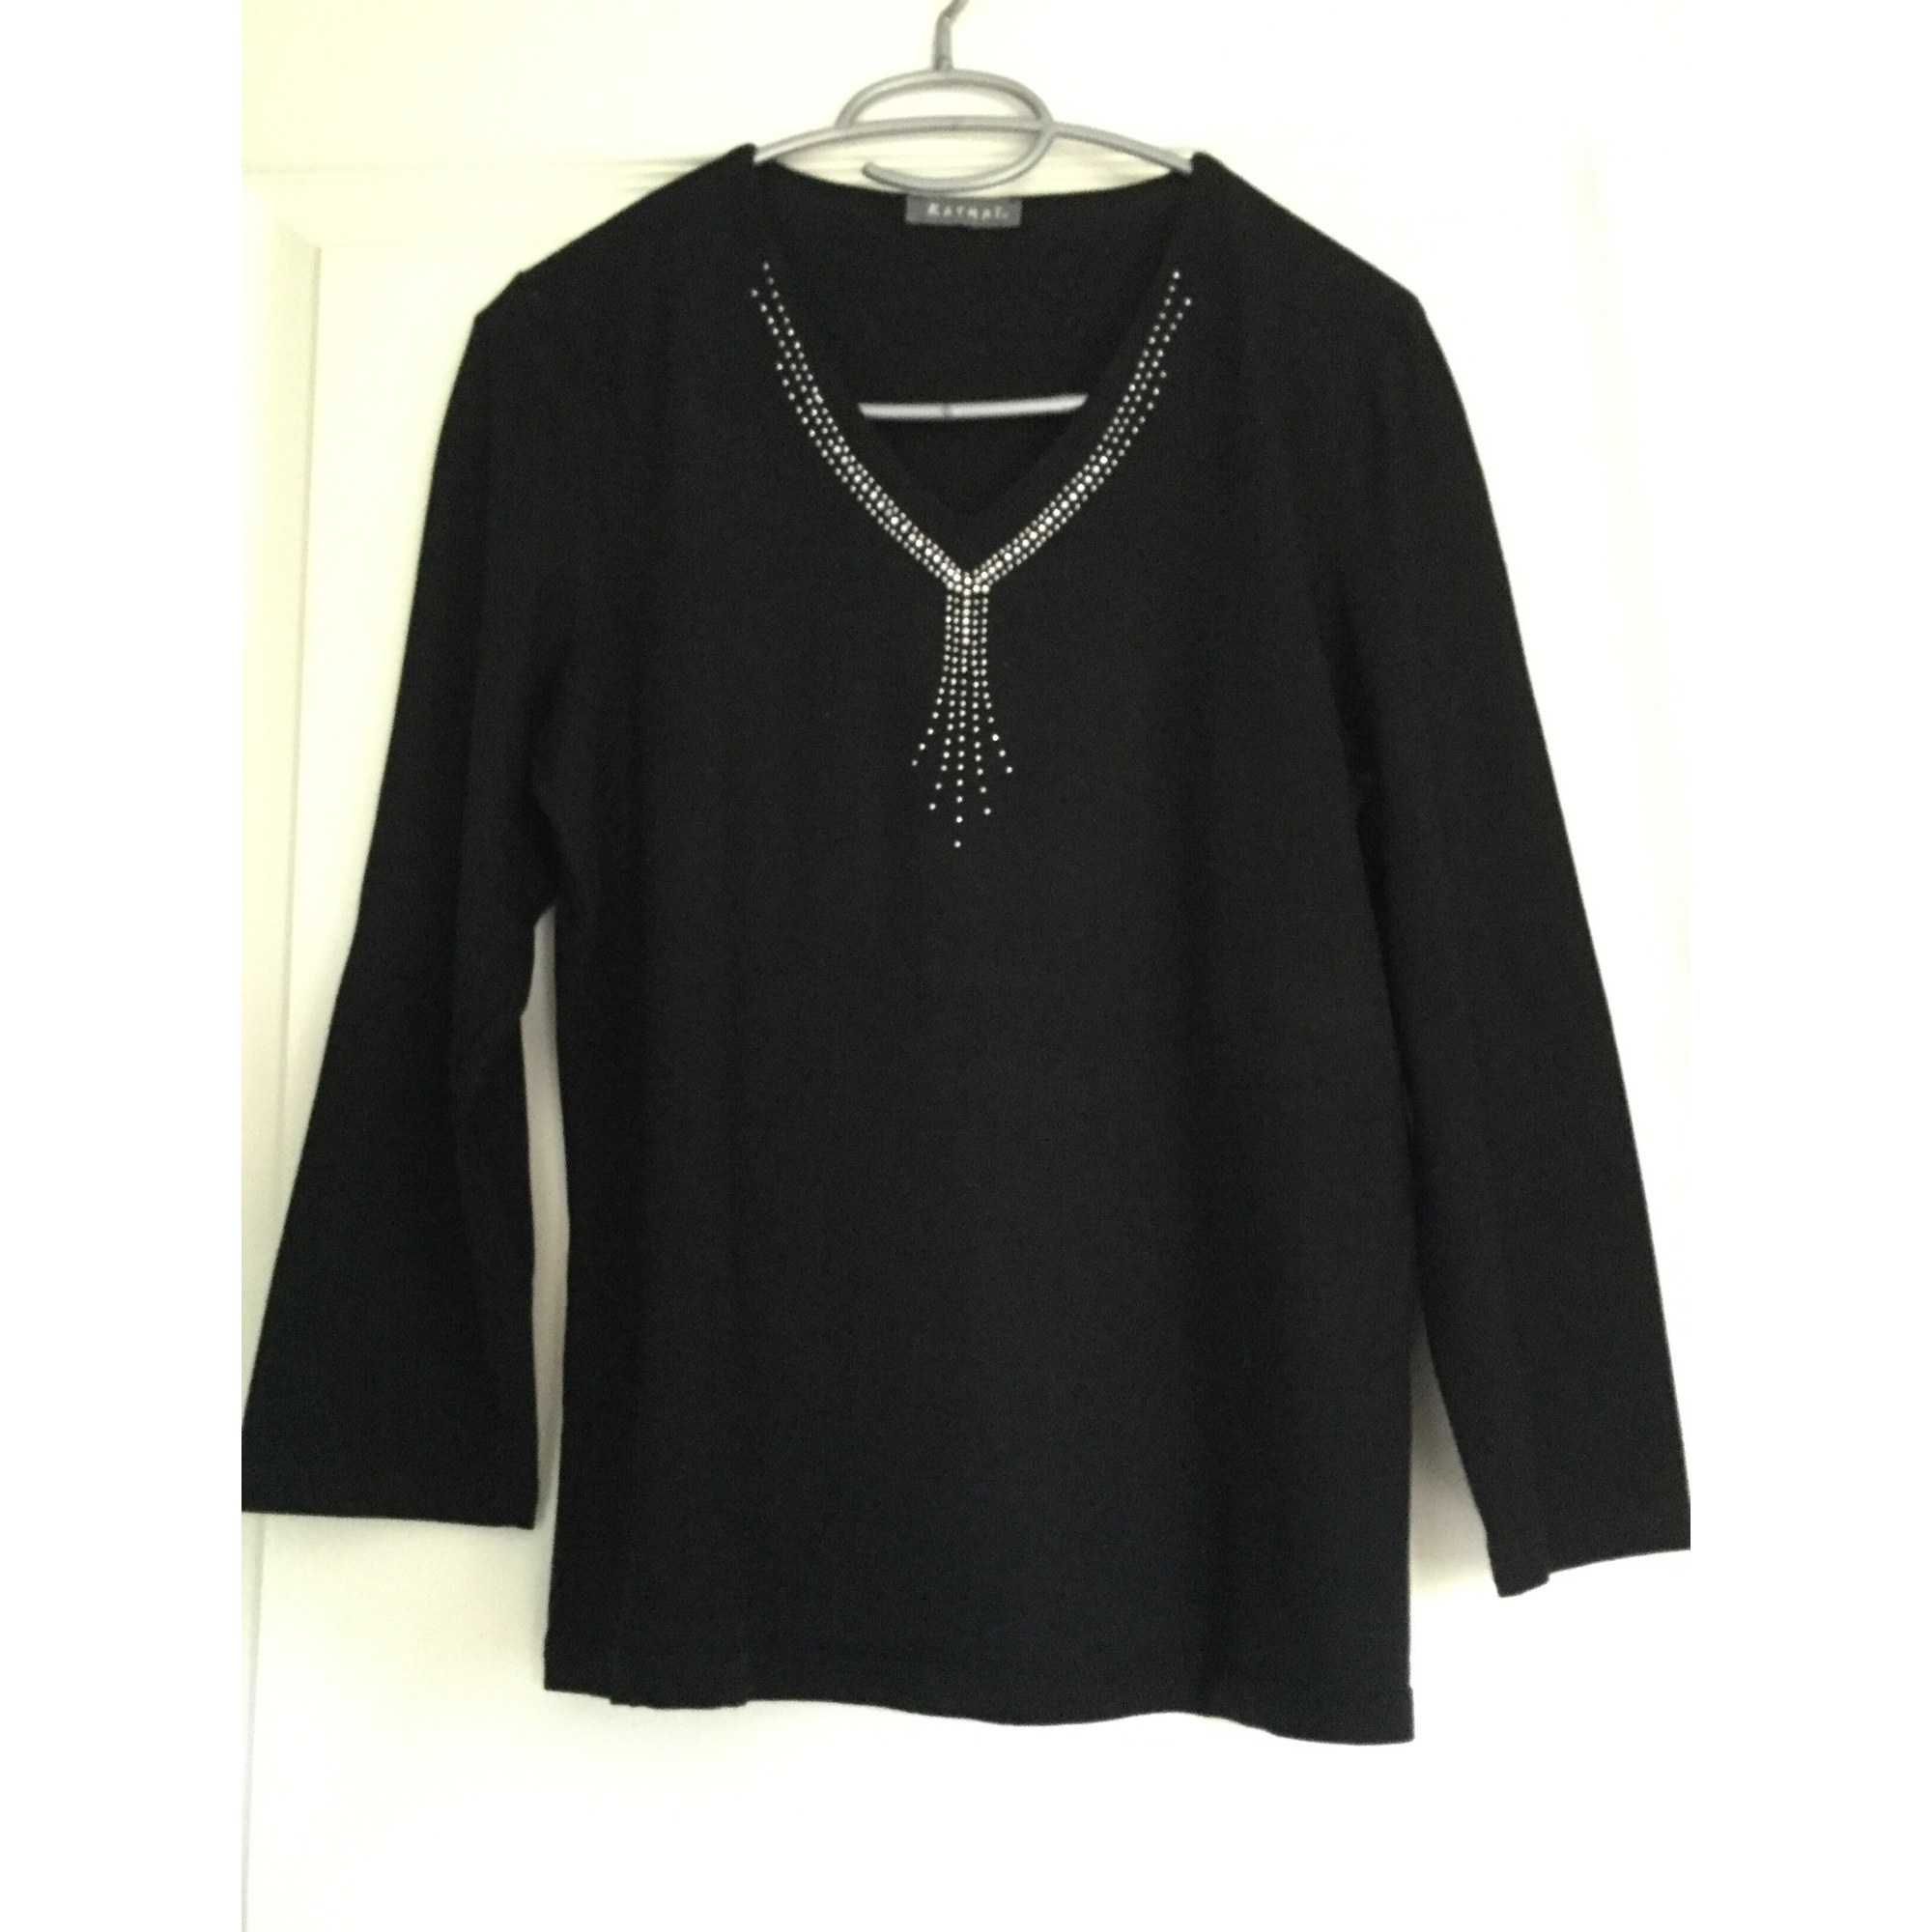 Top, tee-shirt KATMAI Noir